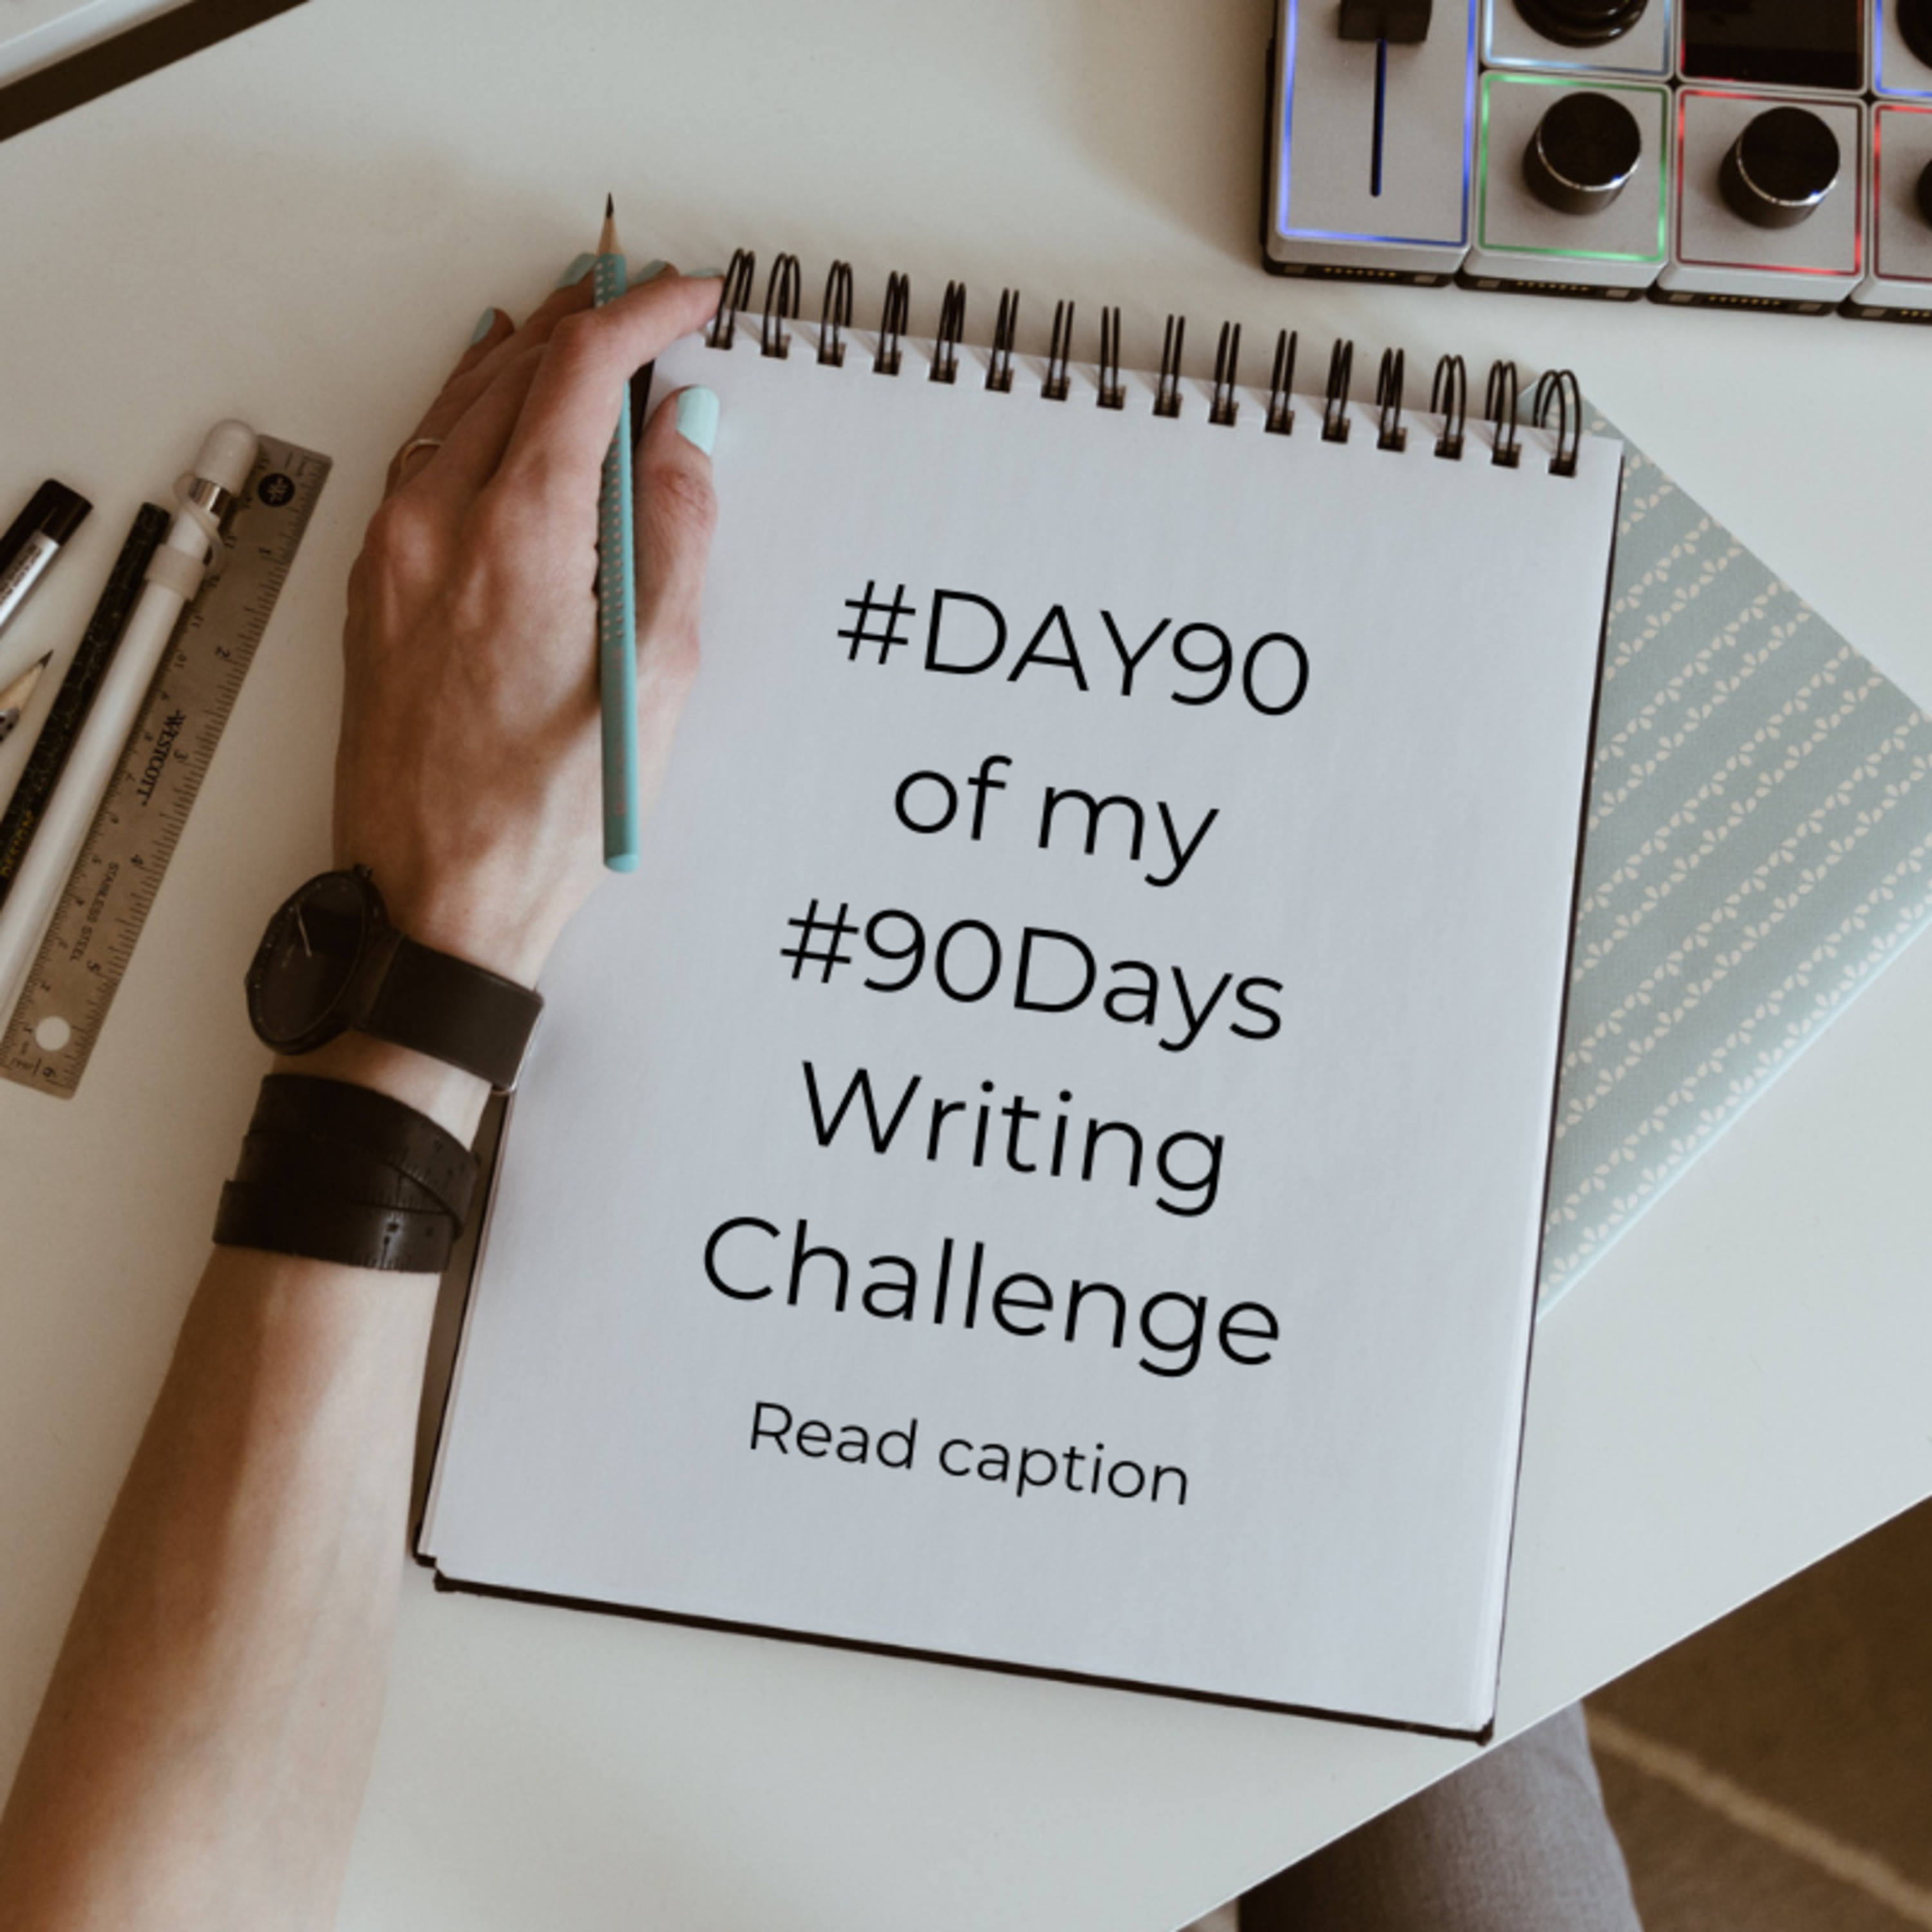 Sharing 90 Days Writing Challenge Journey #E018